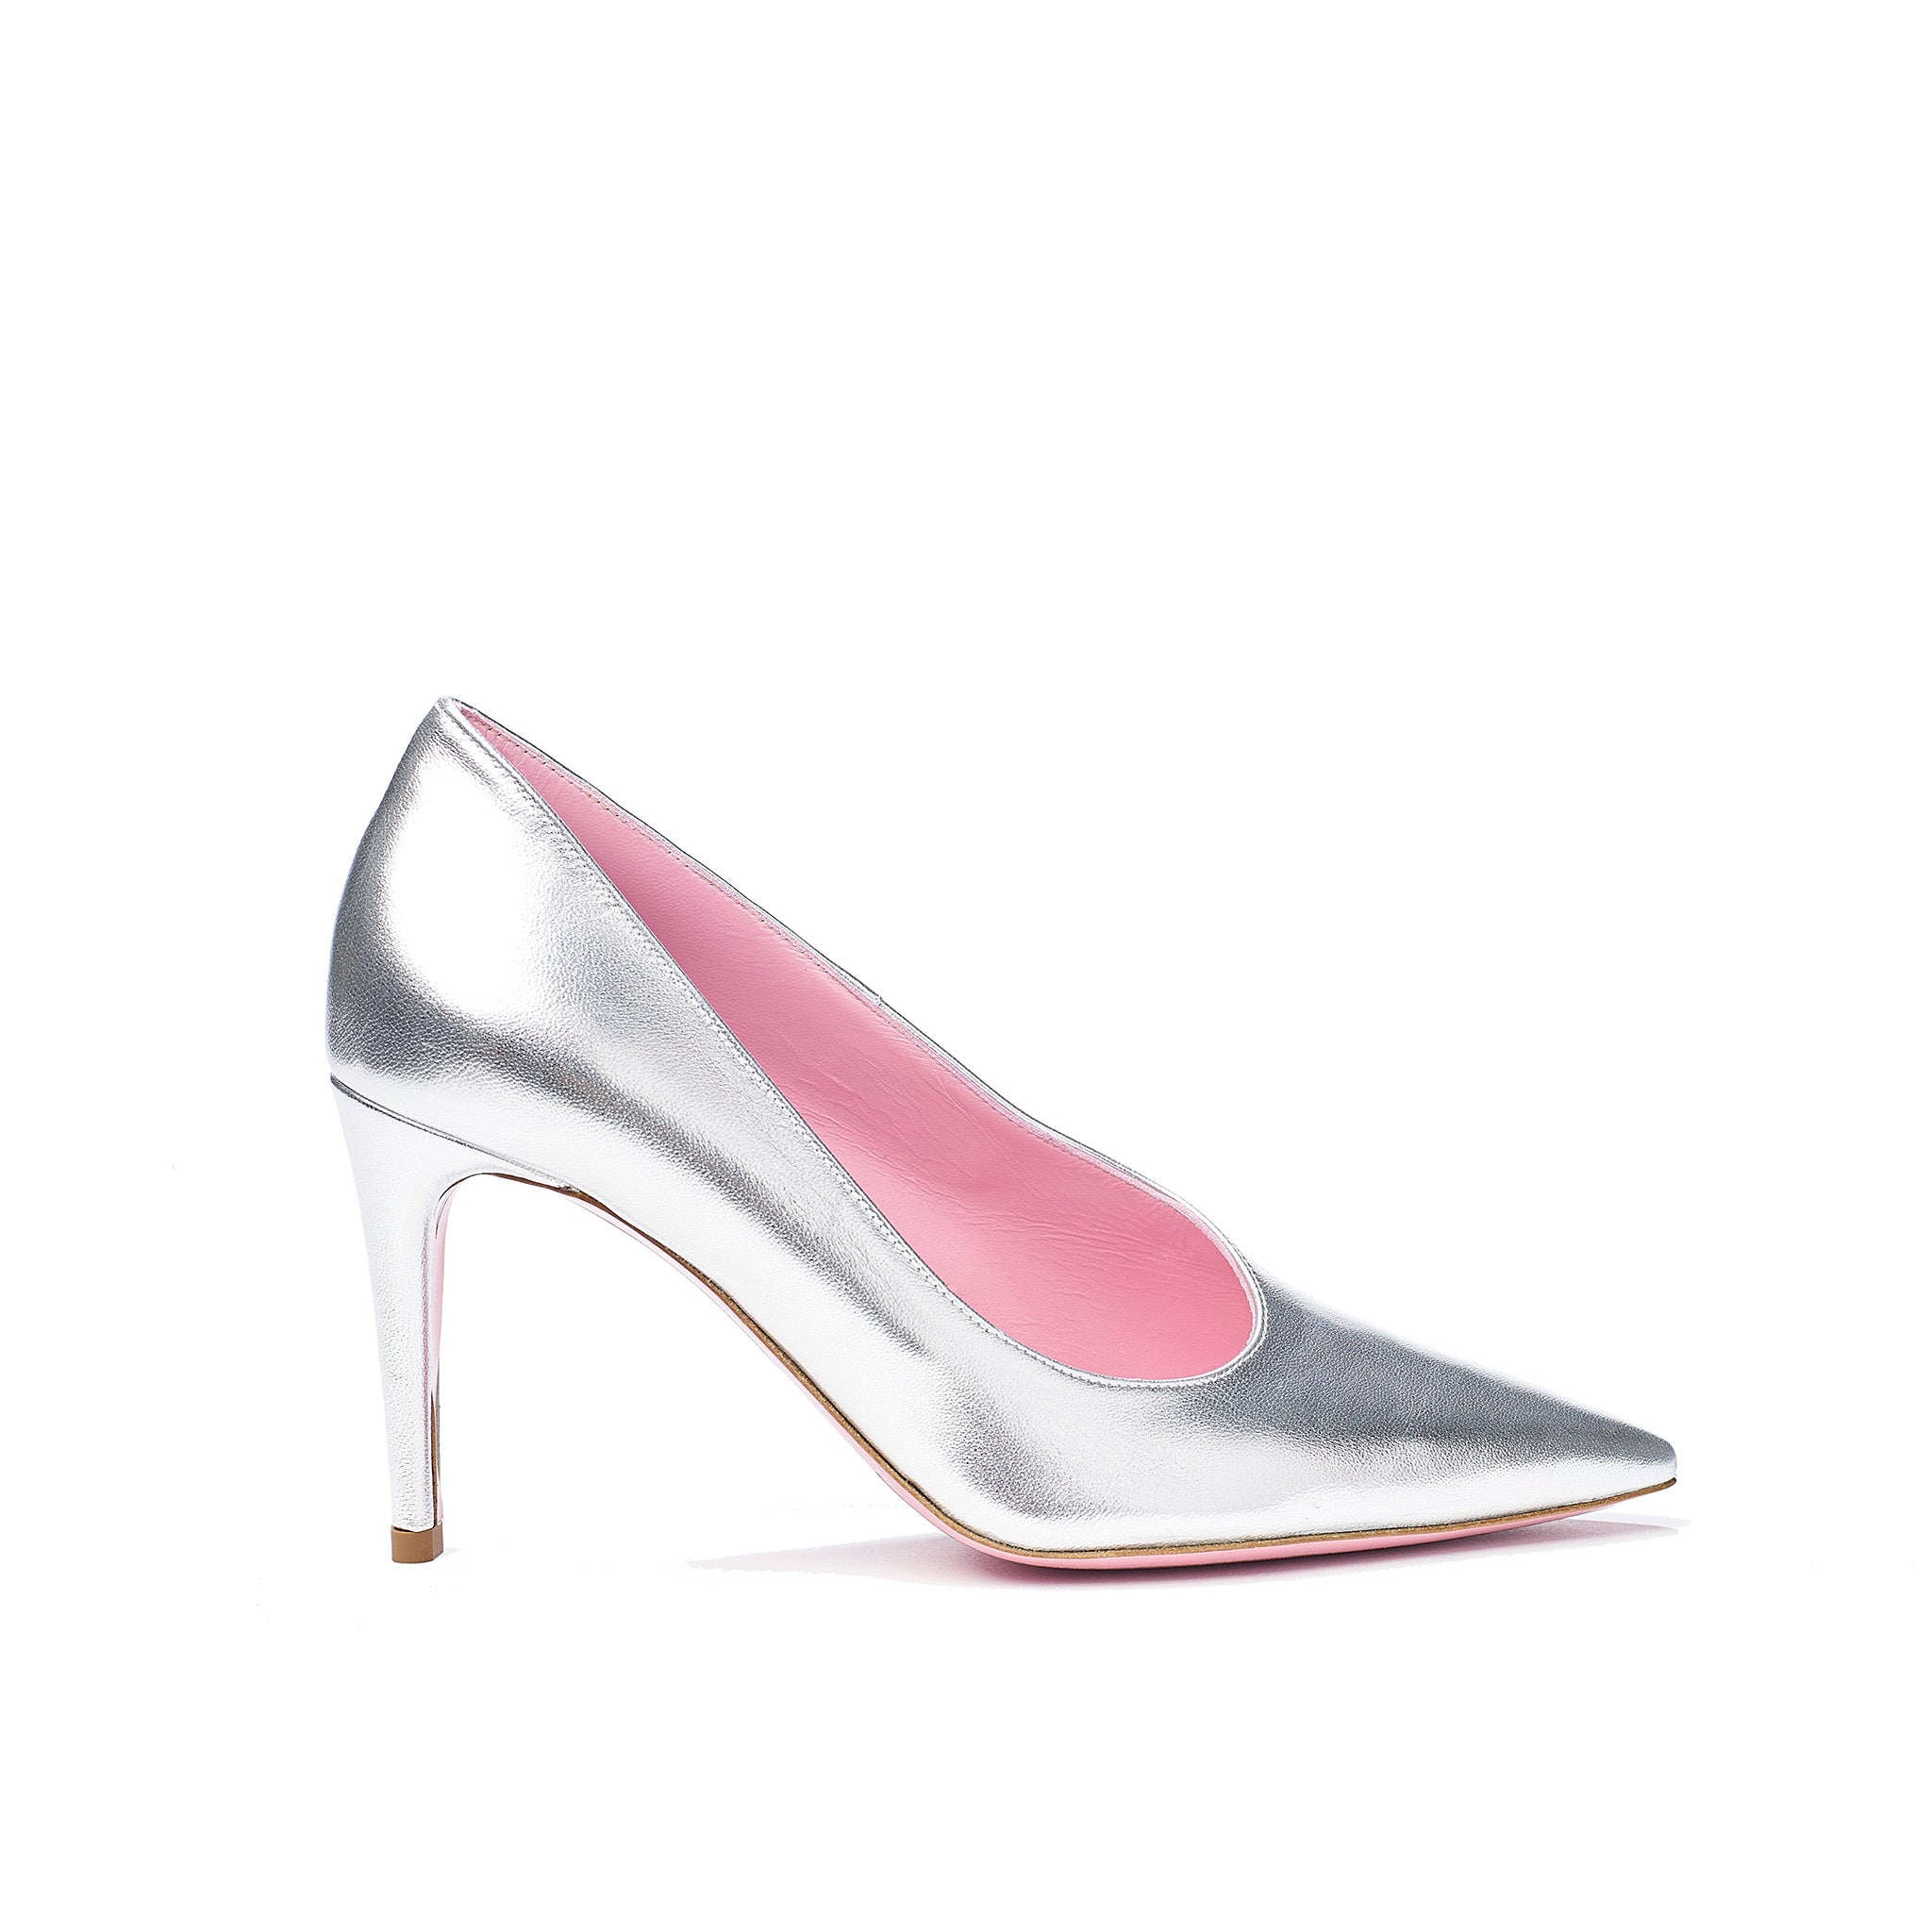 Phare asymmetrical pump in metallic silver leather